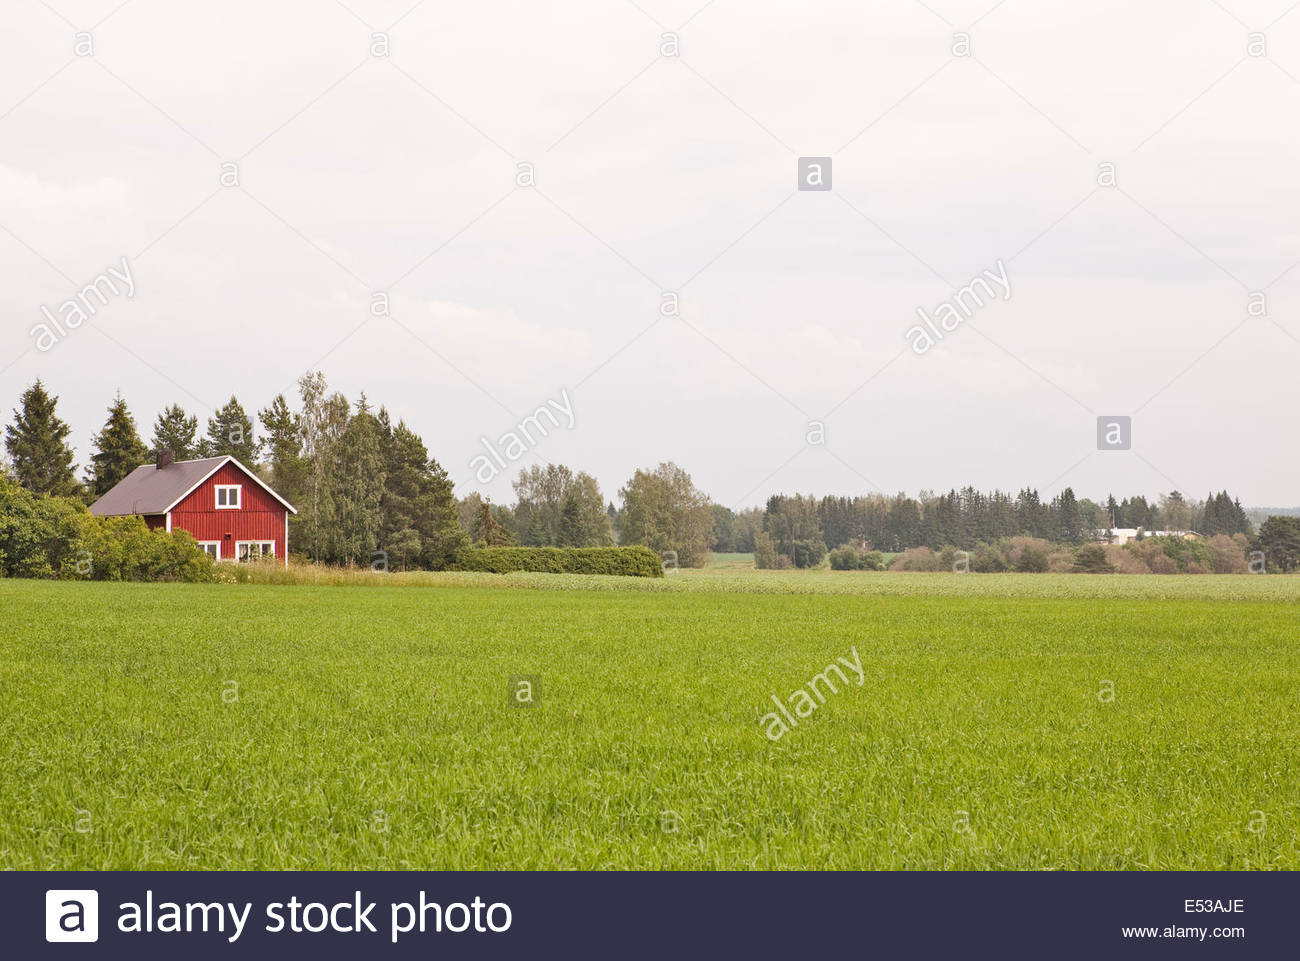 Red house in countryside in Finland - Stock Image